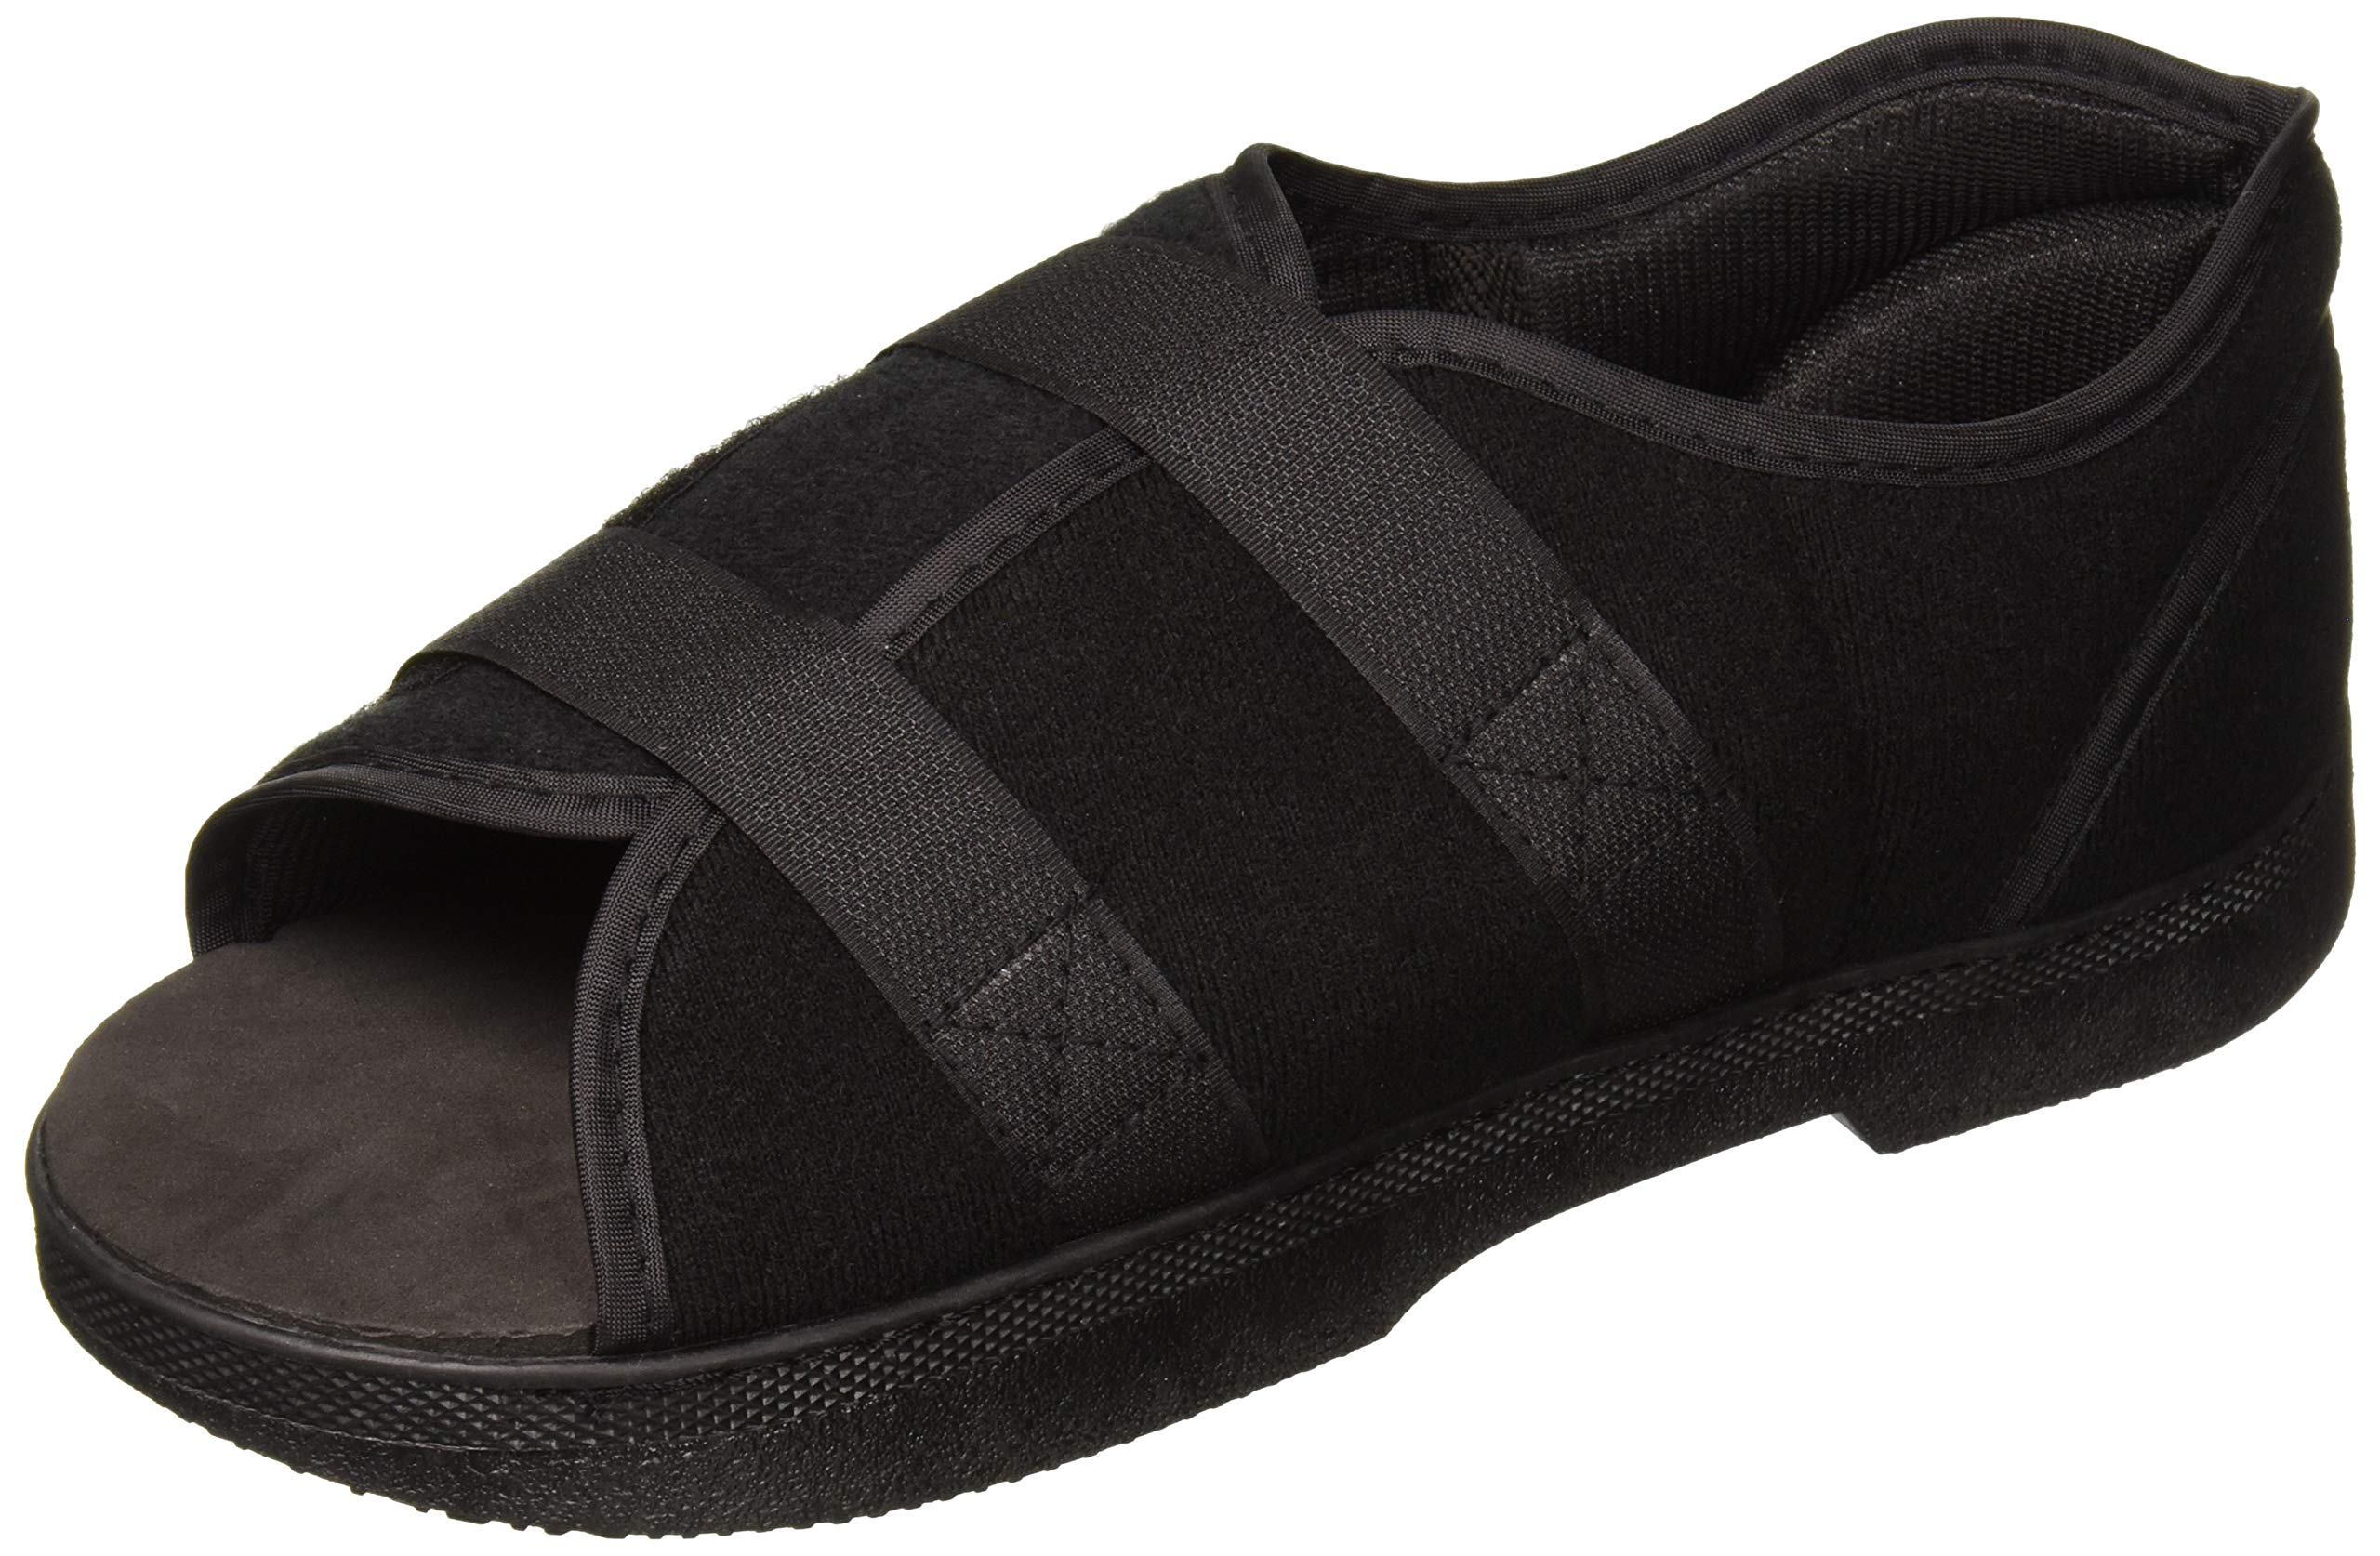 Darco International Softie Surgical Shoe Mens, Medium, 0.62 Pound by Darco International